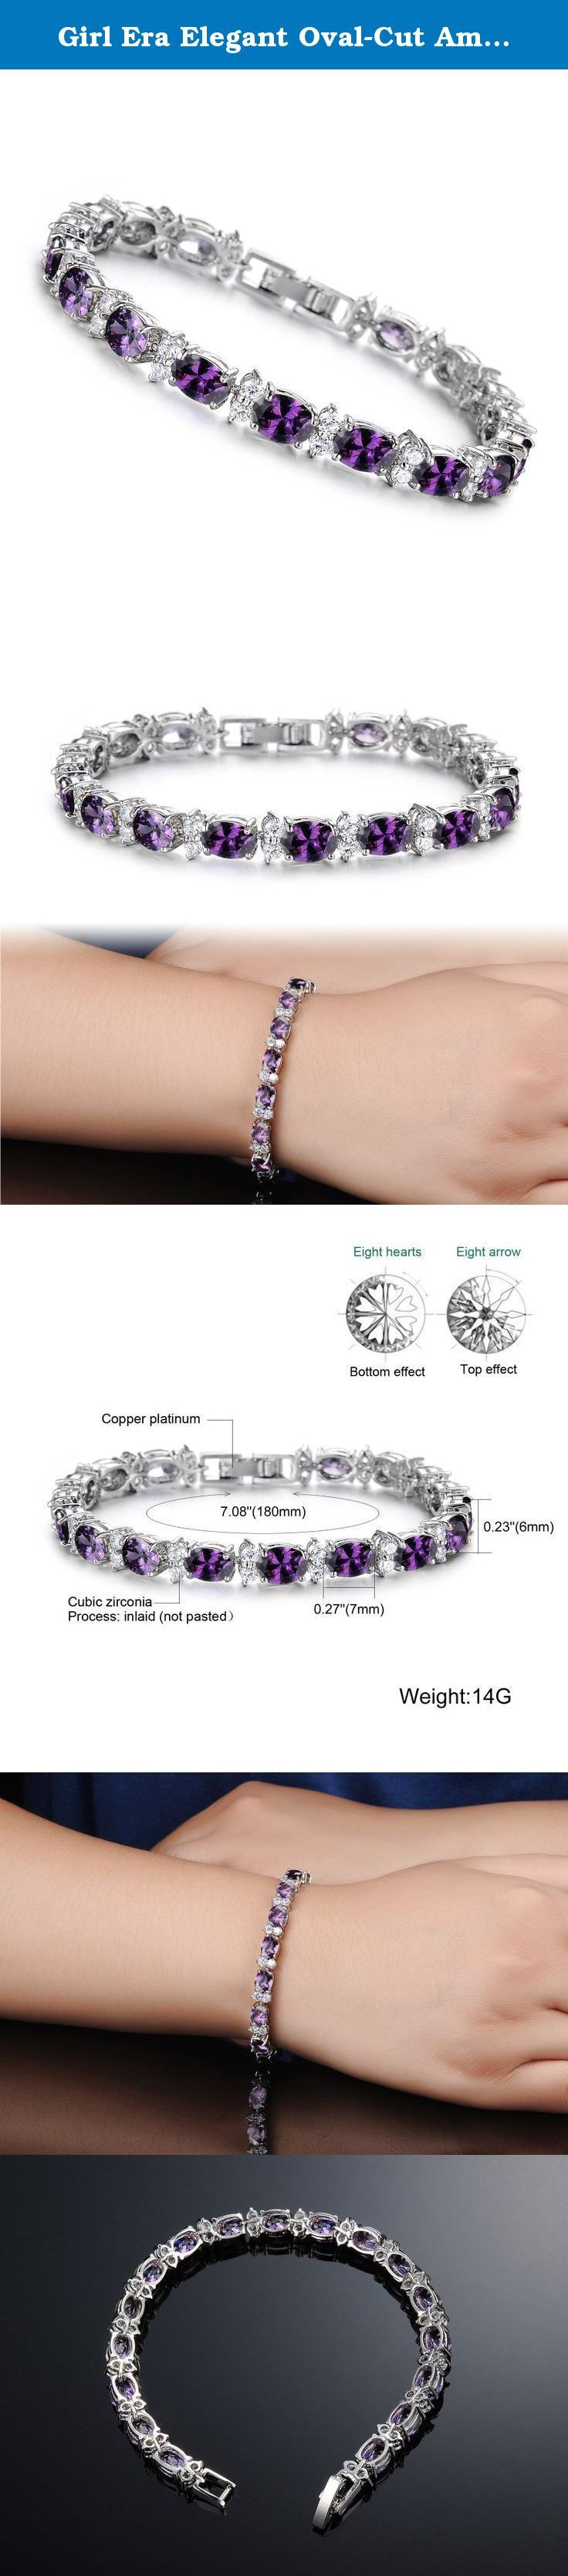 Girl Era Elegant Oval-Cut Amethyst with Genuine Tennis Bracelet Charm Bracelets. Our Mission is to spread generosity. We create beautiful and handcrafted pieces that tell a story. When you purchase a Girl Era product, you are joining the mission. When you wear your Girl Era piece, you are spreading the word. Affordable fashion Jewelry, gorgeous design quality jewelry at sweet price. Fresh color and elegant add dazzling color to an ensemble with this rhinestone jewelry. This item provides…